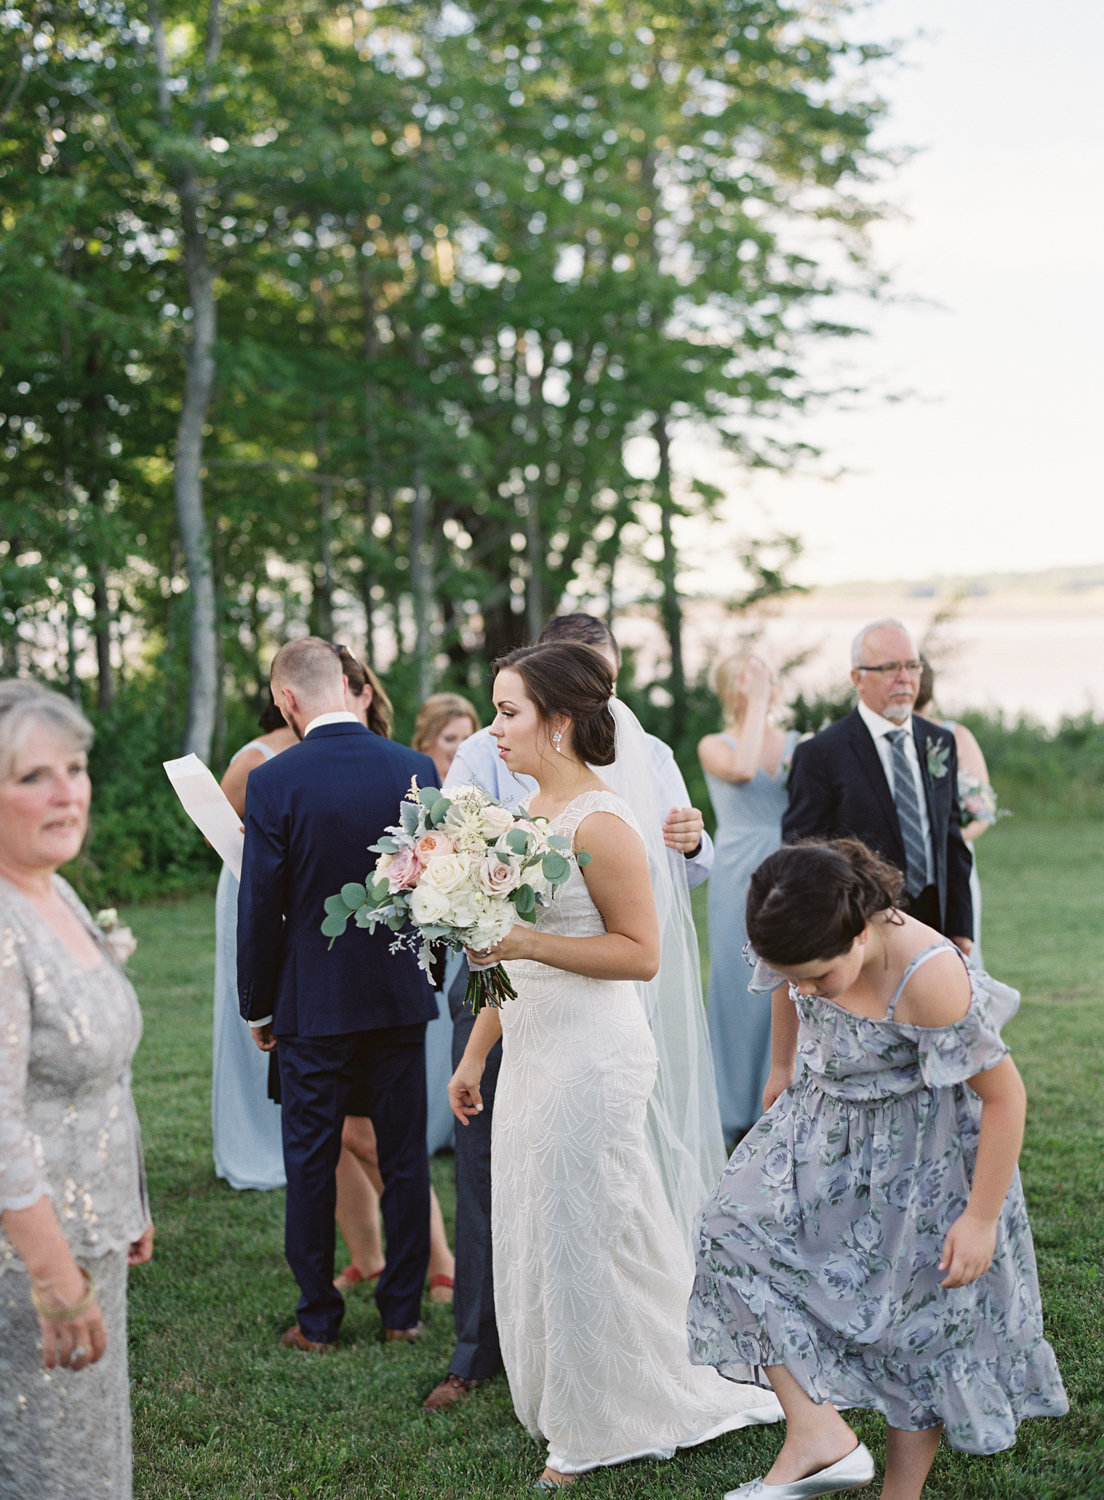 Jacqueline Anne Photography - Nova Scotia Backyard Wedding-72